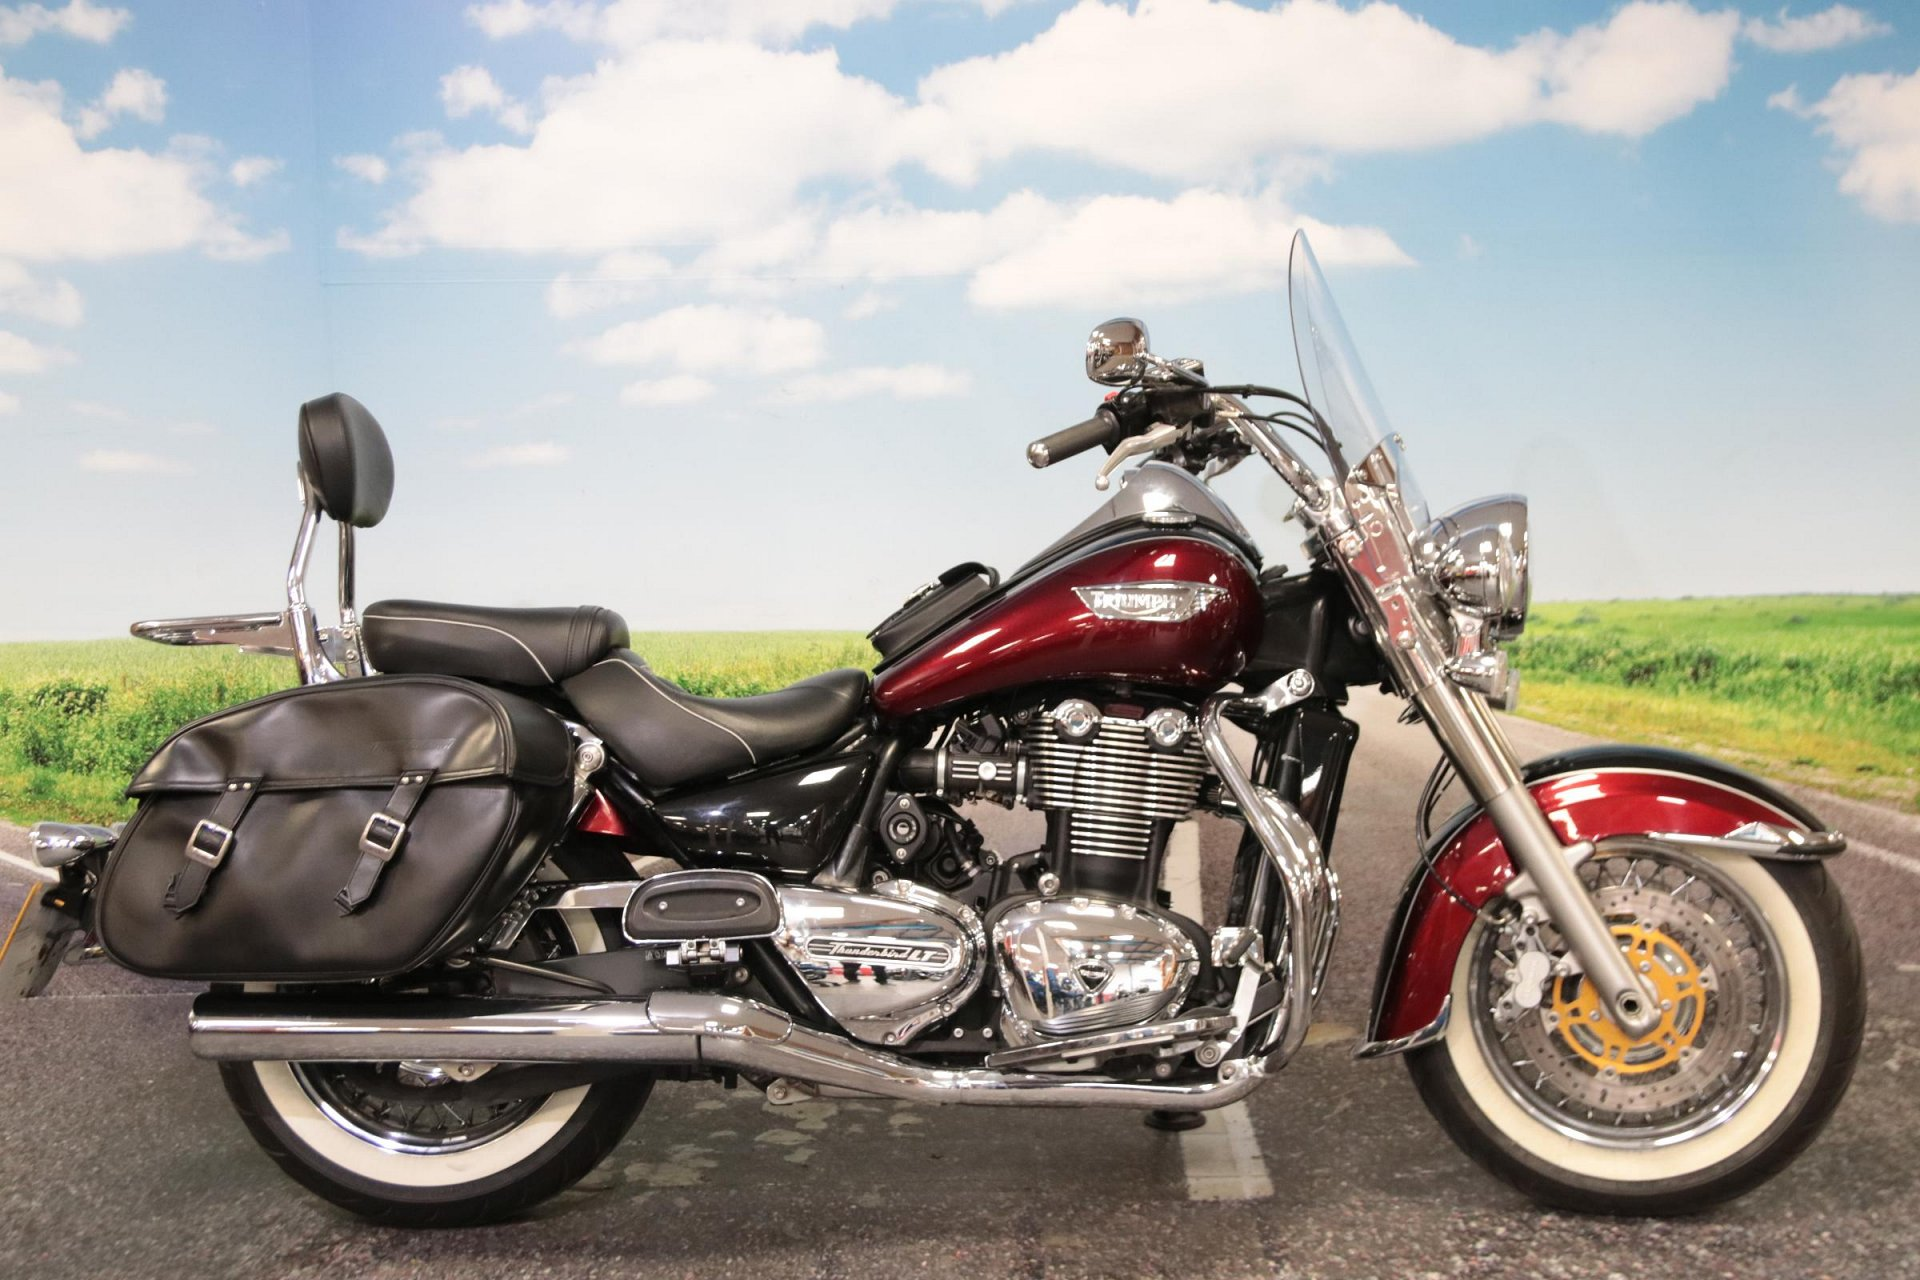 2014 Triumph Thunderbird LT for sale in South Wales